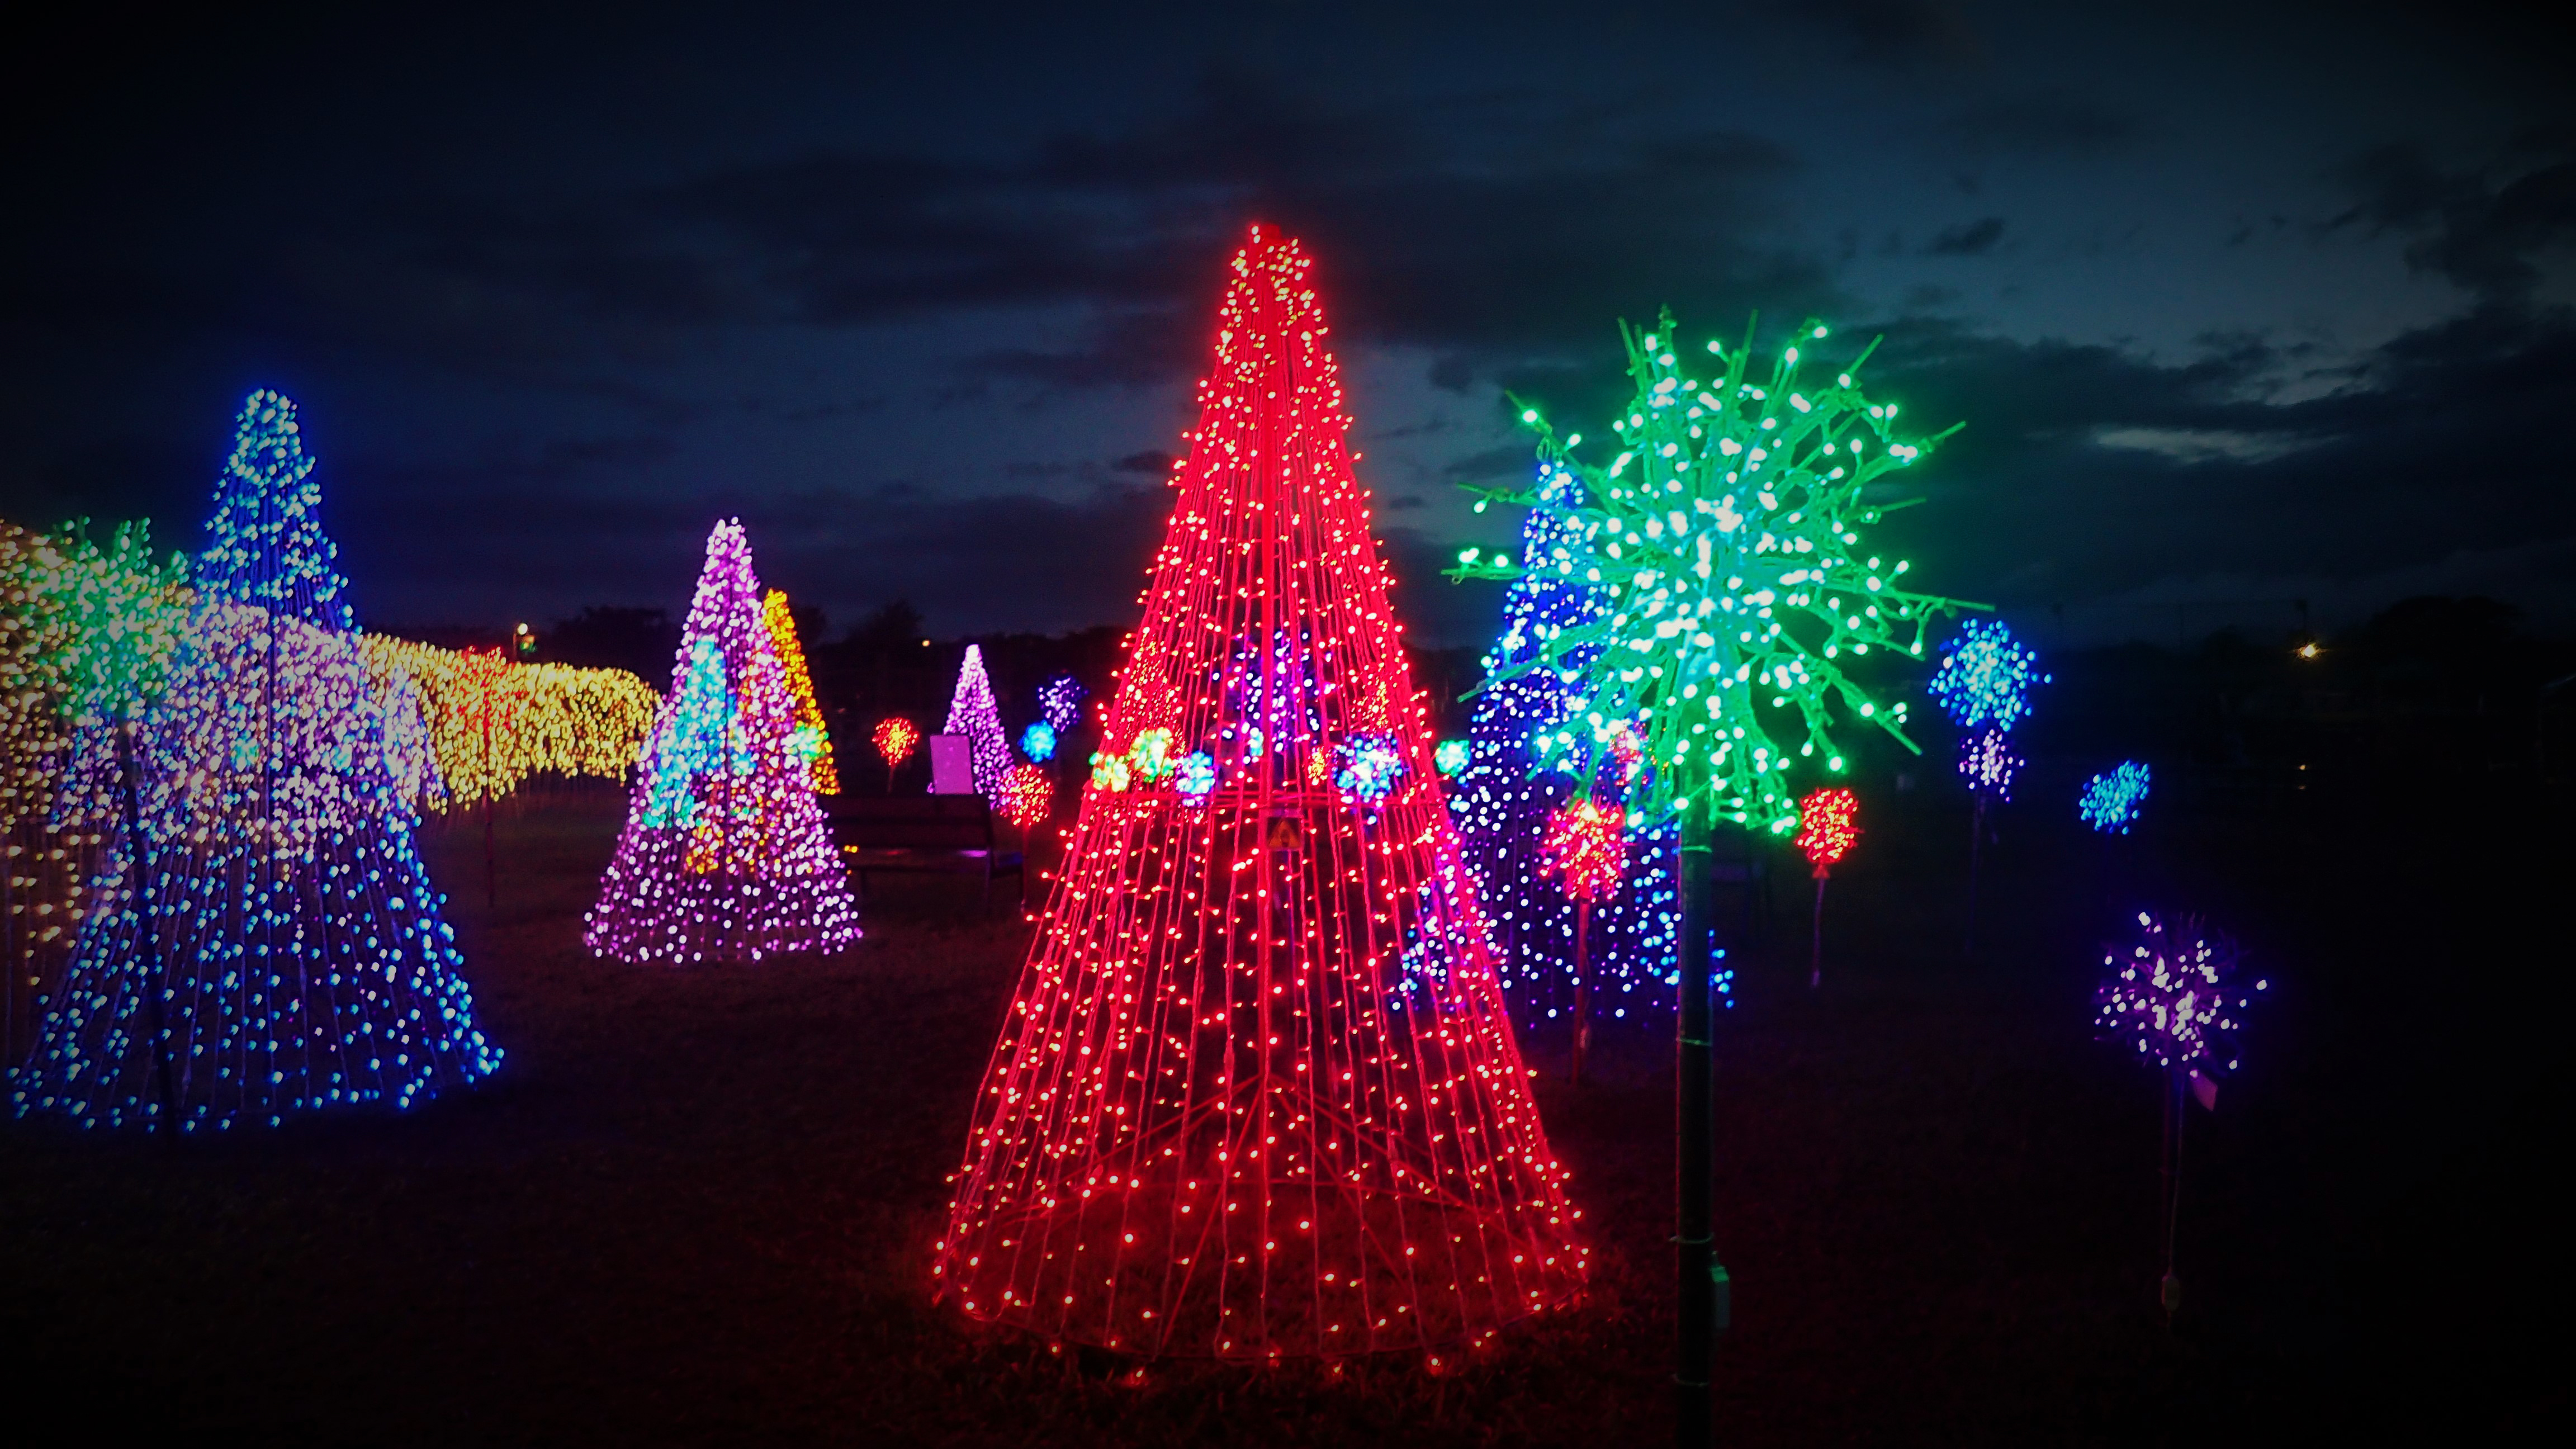 CHRISTMAS TREES. Christmas trees stand in different colors outside the tunnel.